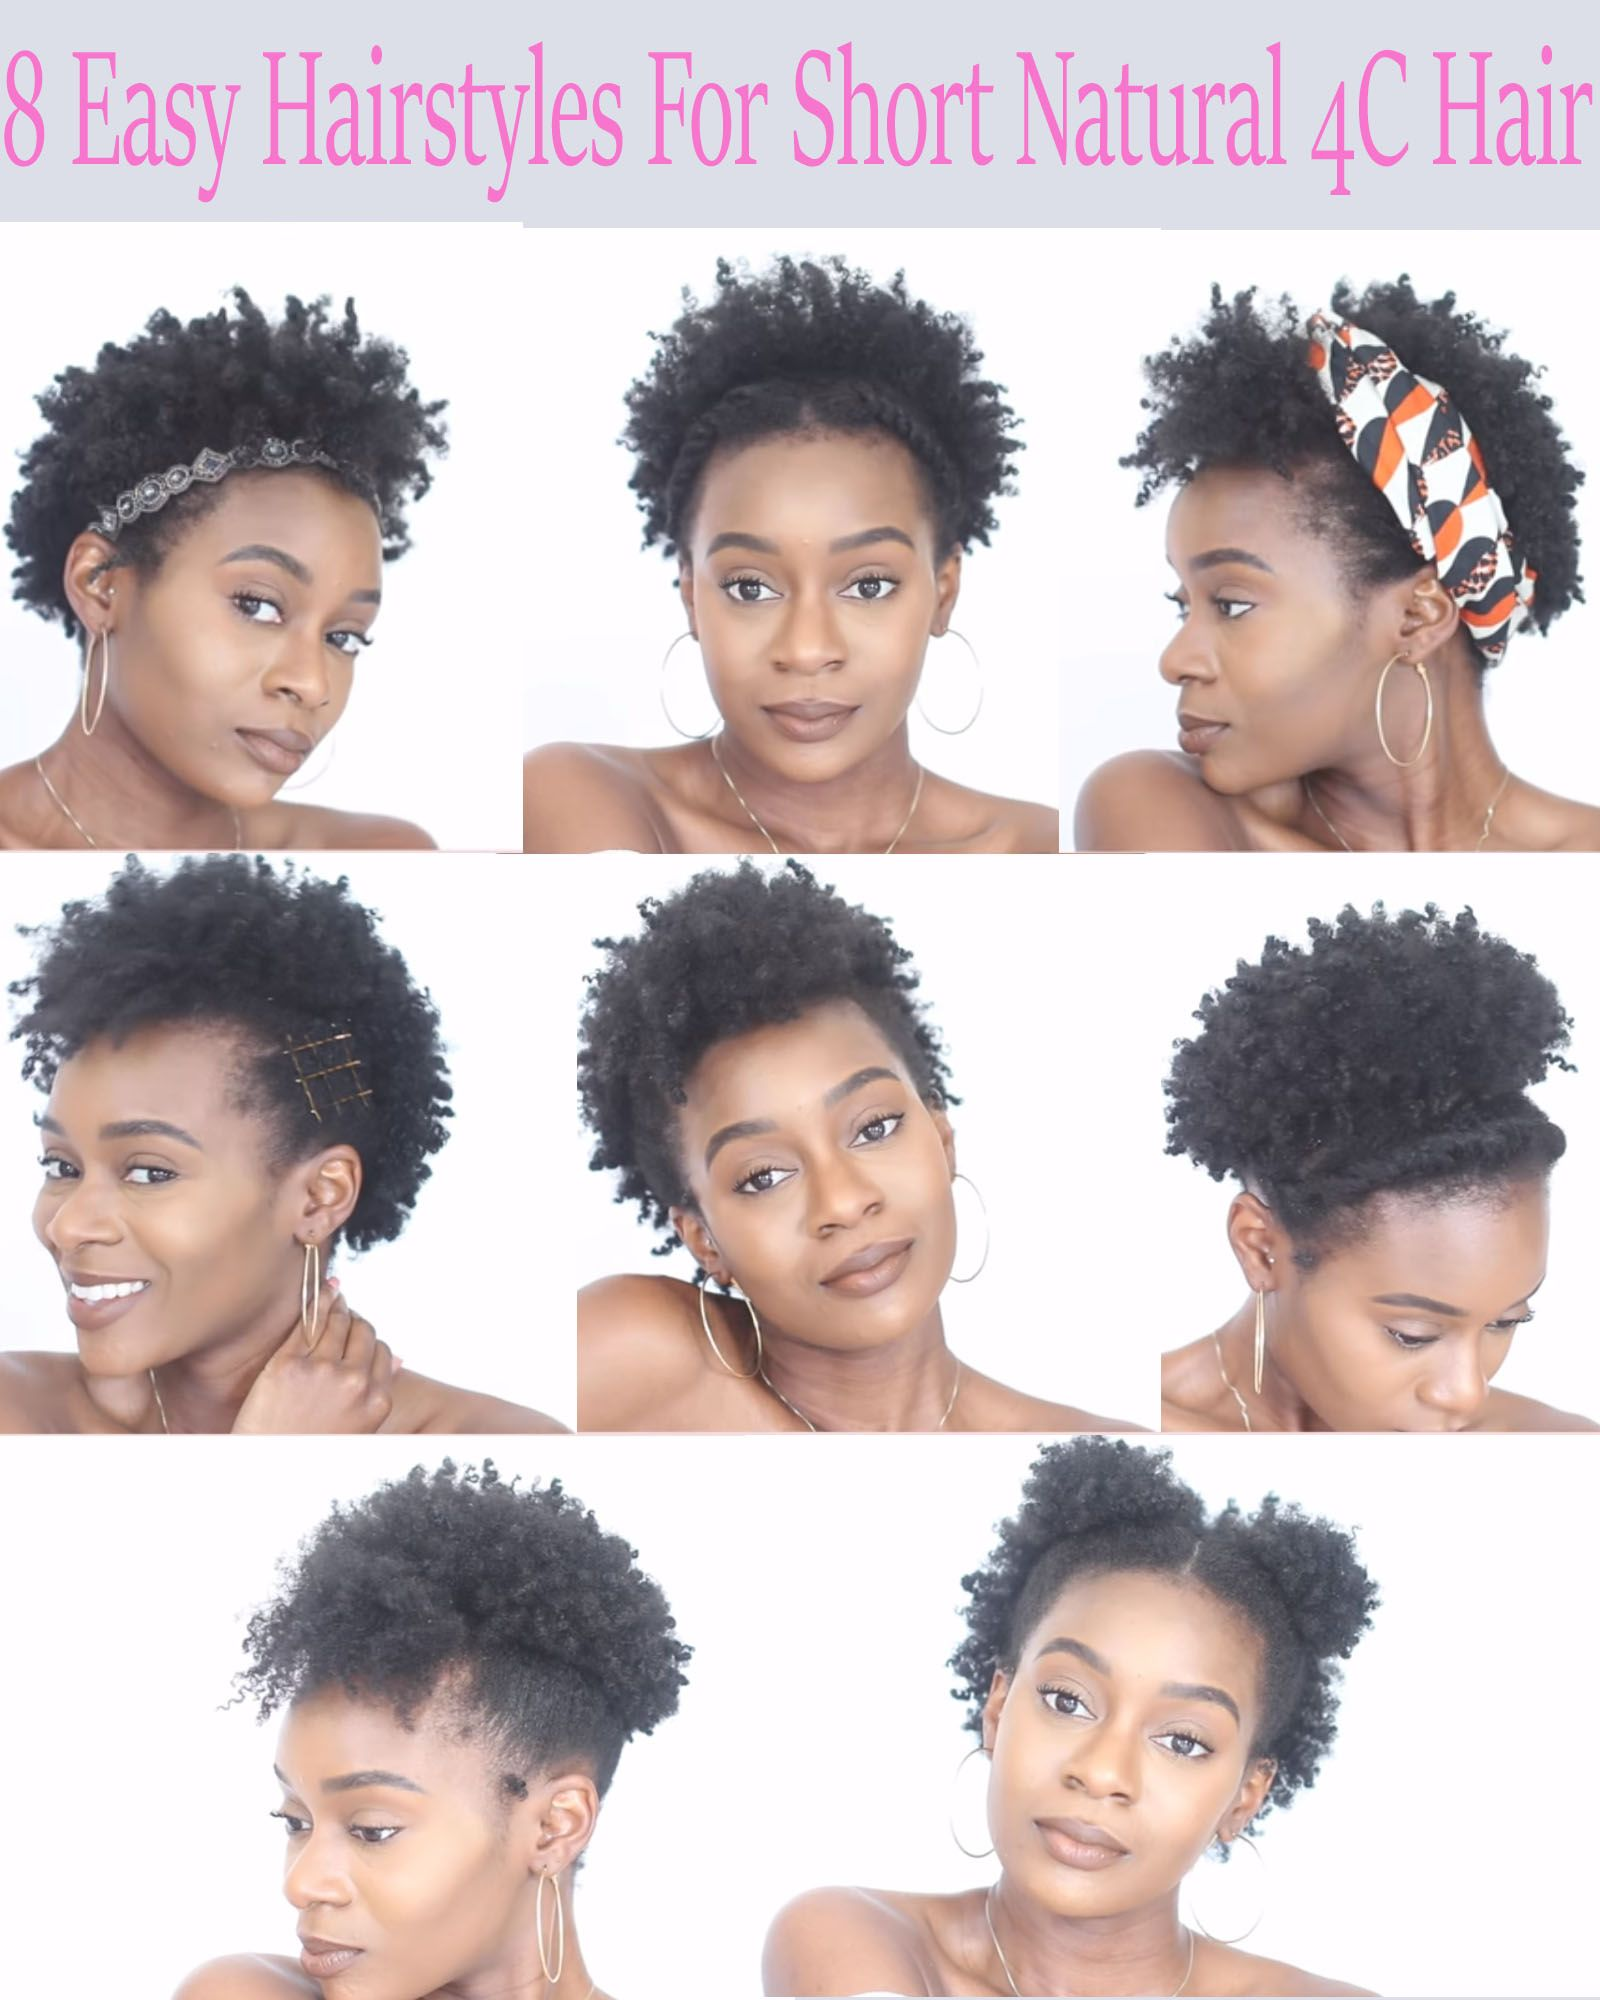 8 Easy Protective Hairstyles For Short Natural 4c Hair That Will Not Damage Your Edges African American Hairstyle Videos Aahv Short Natural Hair Styles Natural Hair Styles Easy Natural Hair Styles